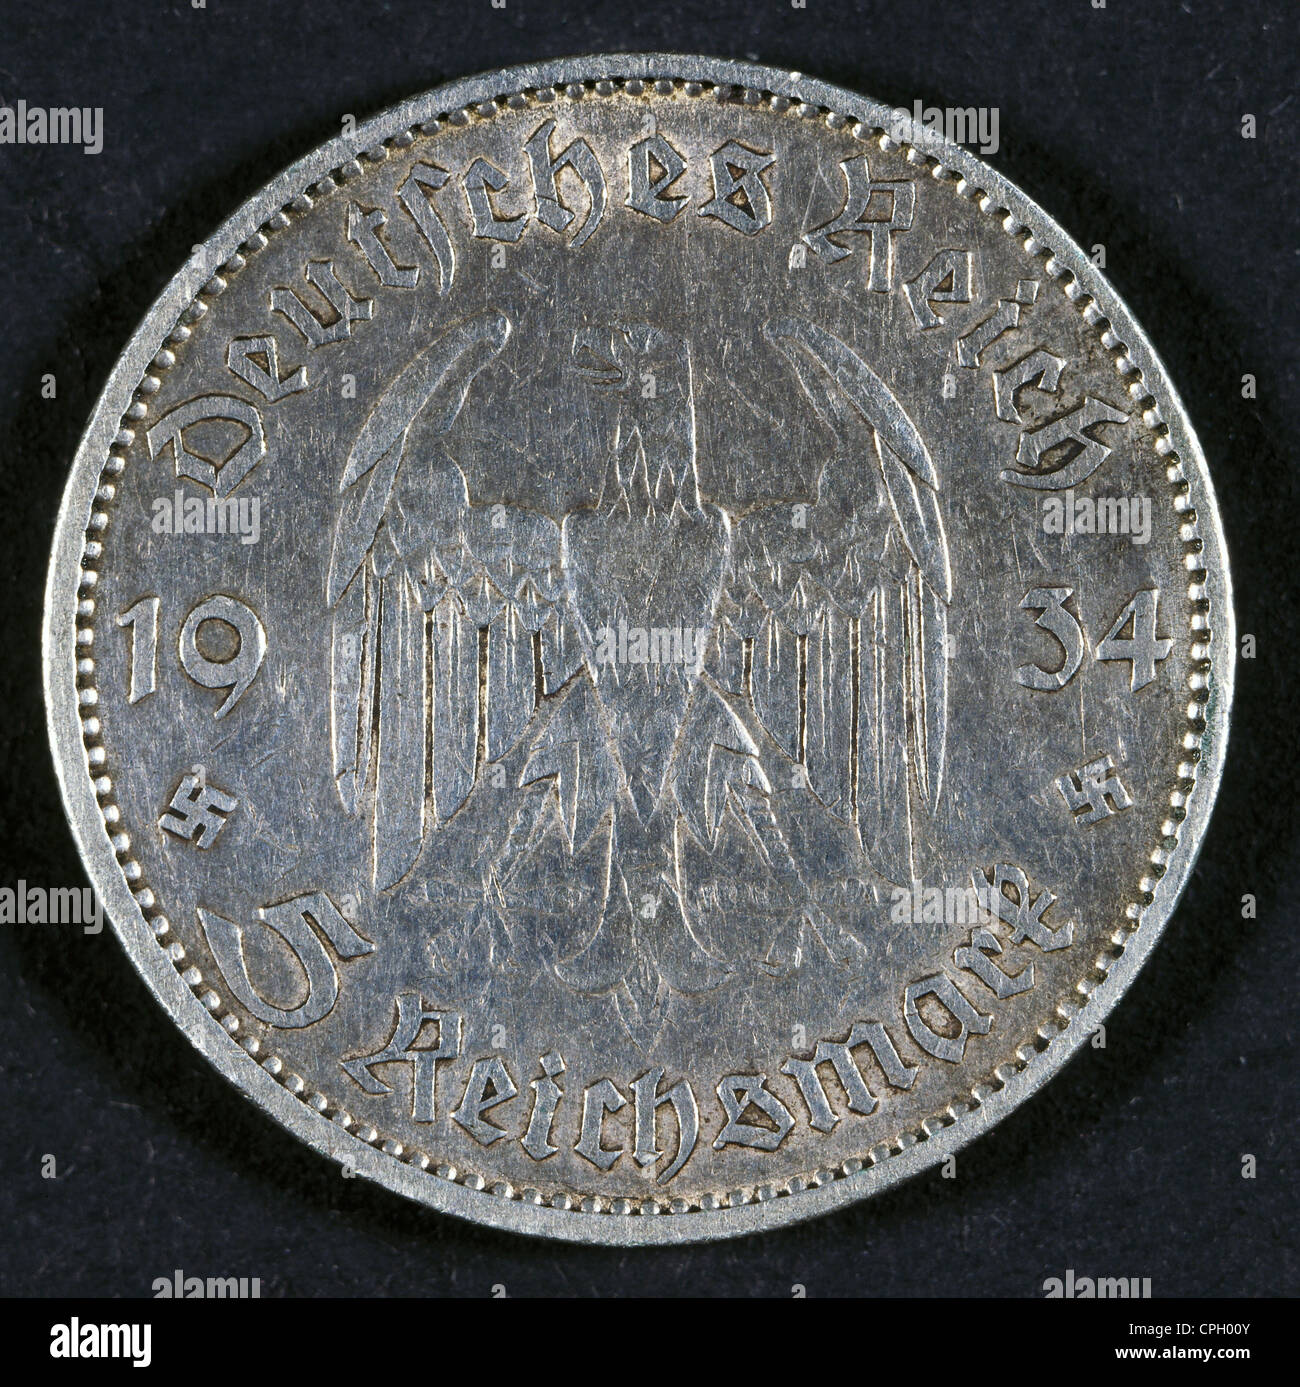 money / finance, coins, Germany, 5 Reichmark, obverse, 1934, Additional-Rights-Clearences-Not Available Stock Photo